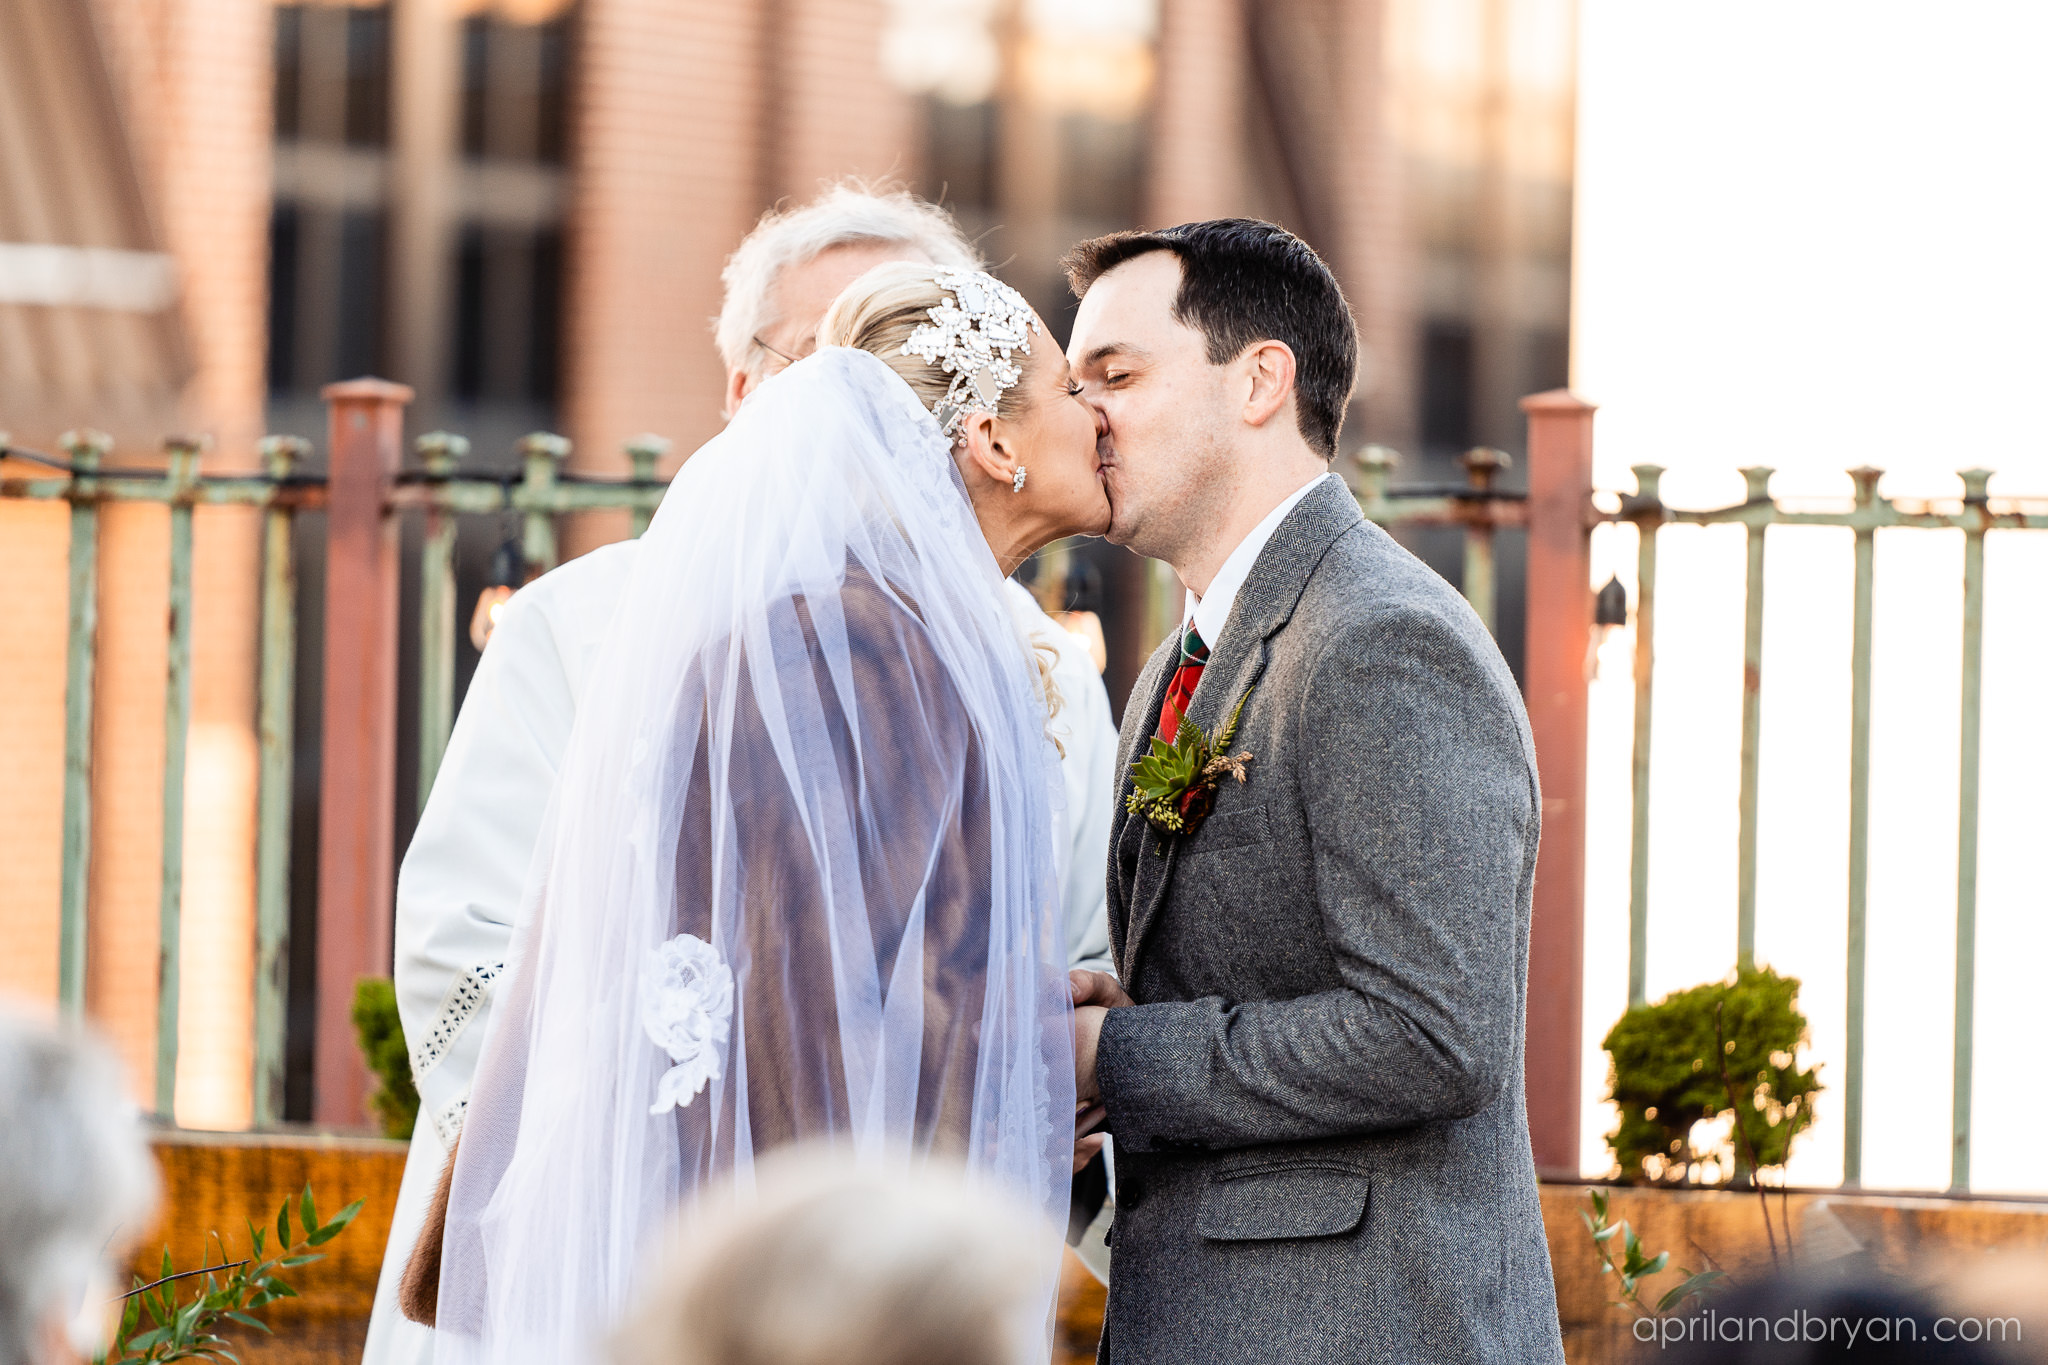 the couple said i DO AND SEAL IT WITH A KISS. Nicholas and Rebecca Fasnacht tie the not at Tellus360 on November 1, 2019. Captured by April & Bryan Photography and featured on Dream Weddings.